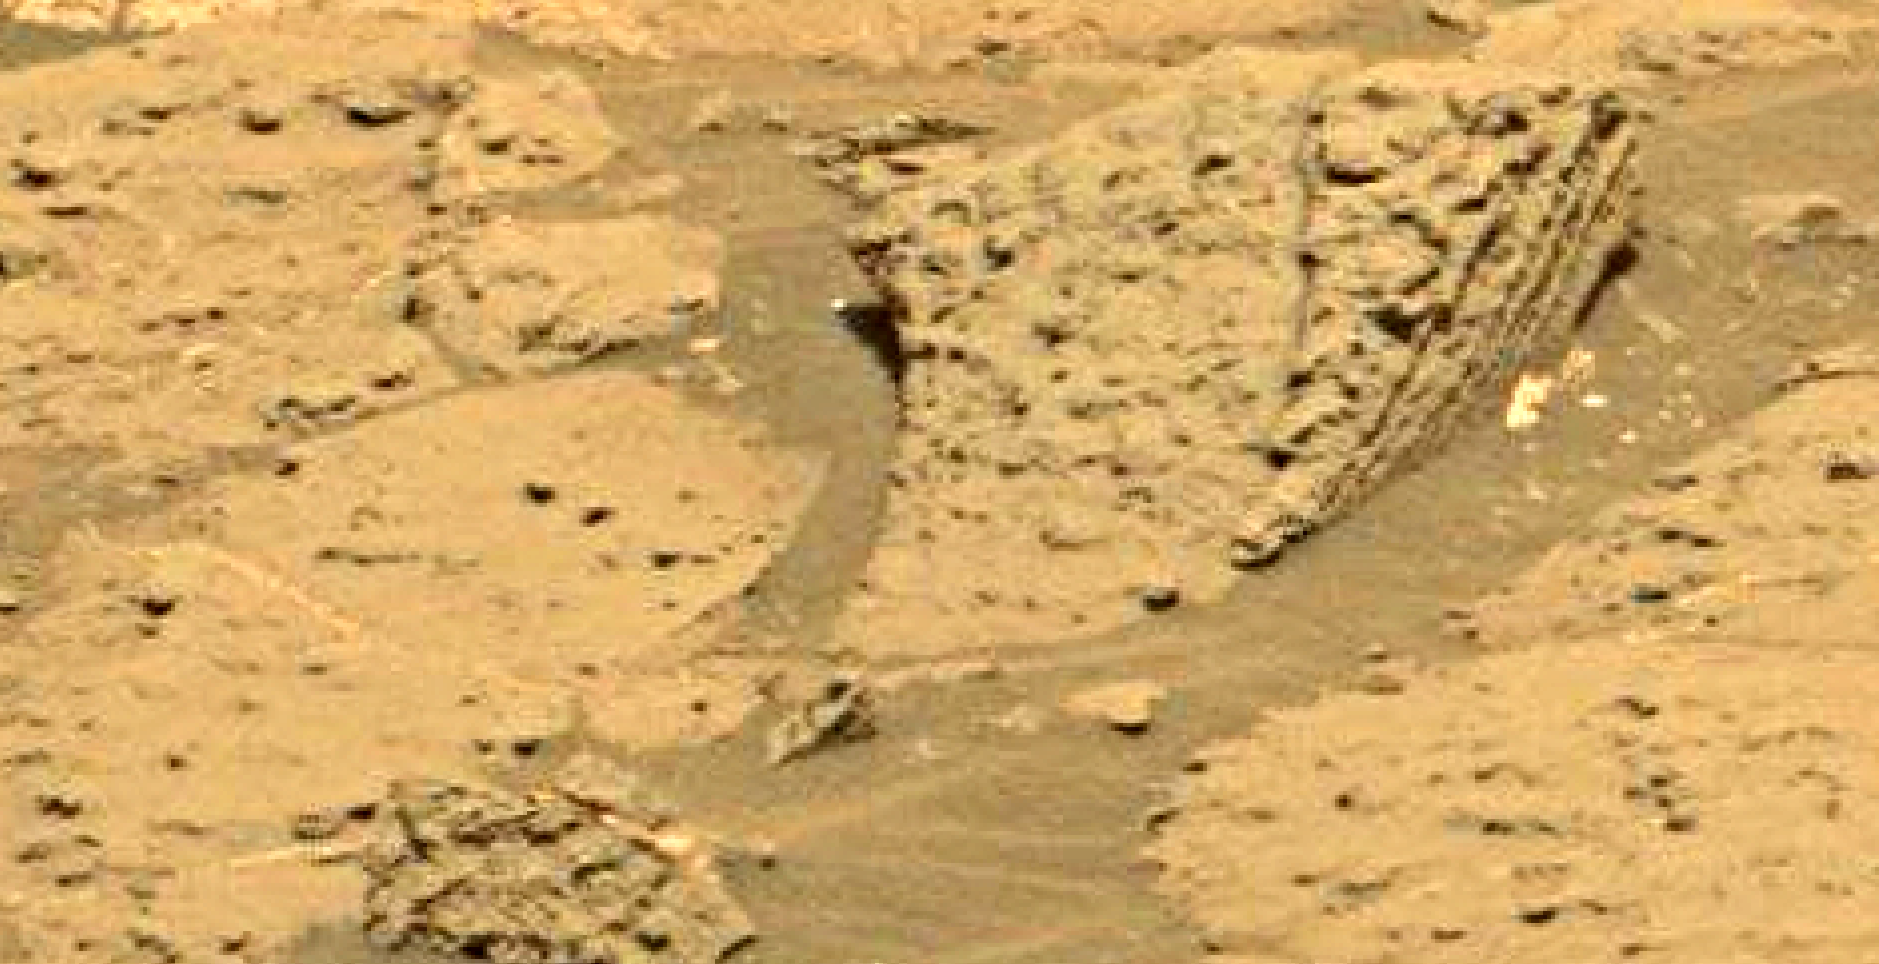 mars sol 1353 anomaly-artifacts 24 was life on mars